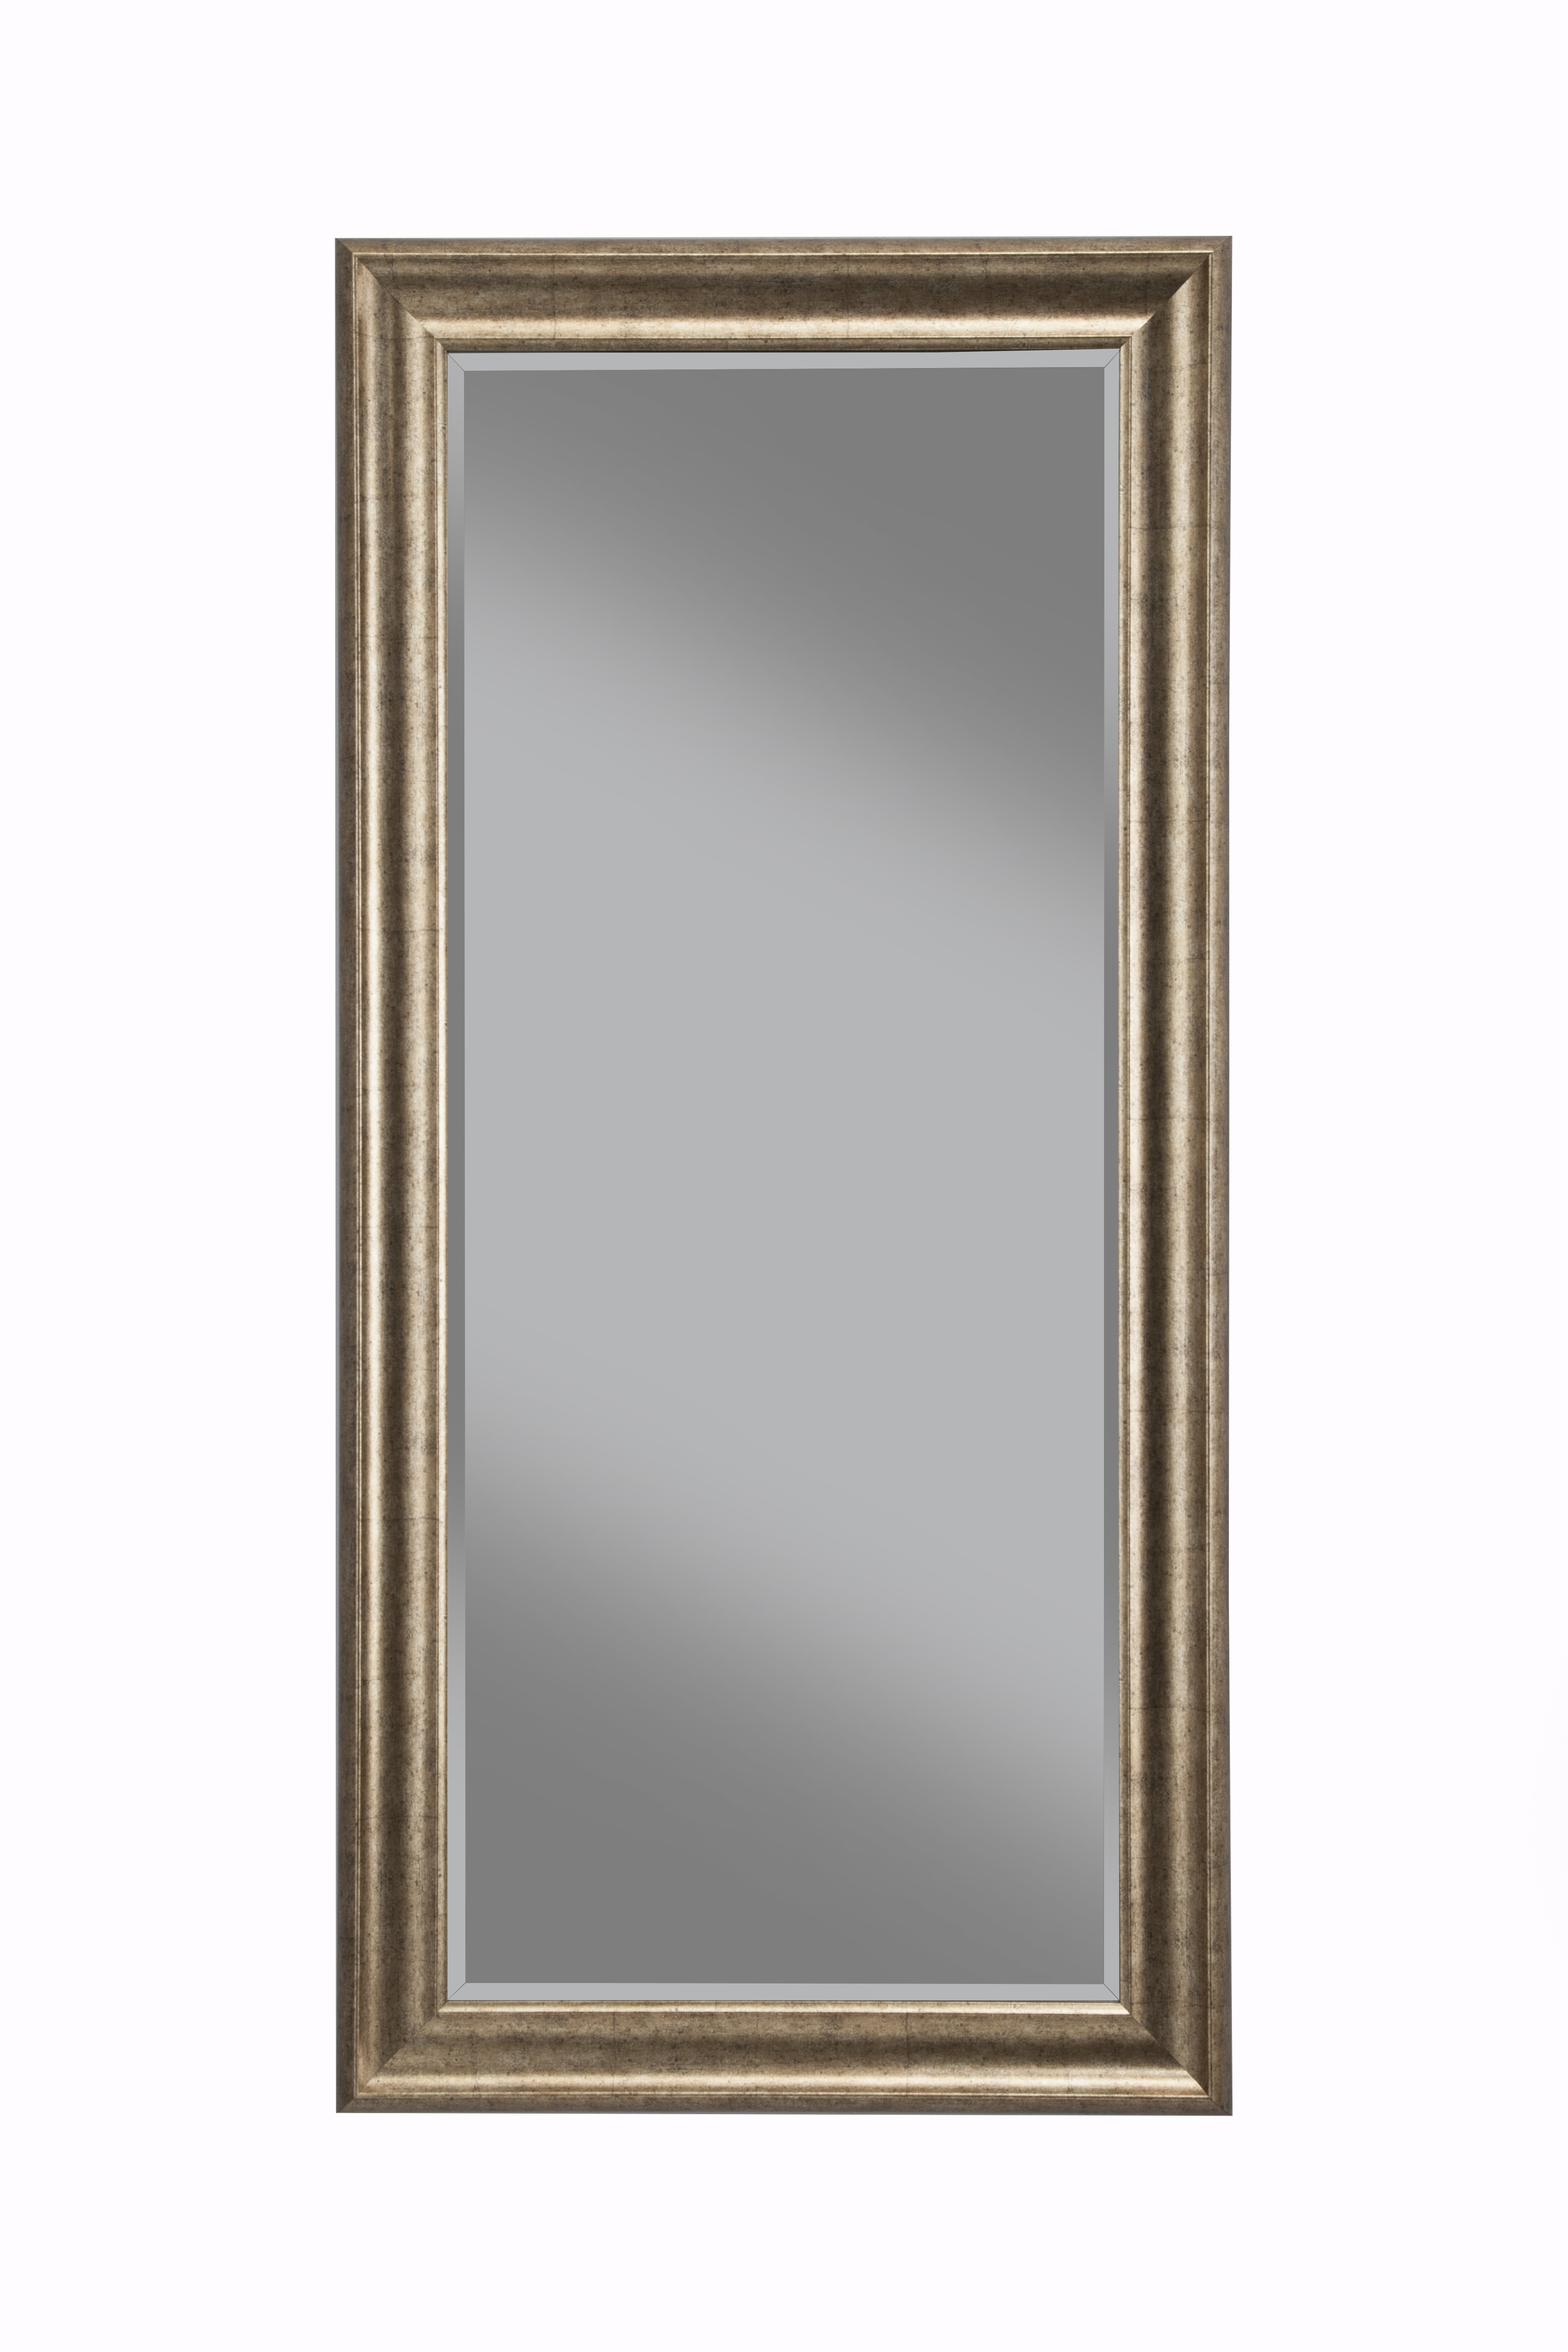 Allmodern Within Lugo Rectangle Accent Mirrors (View 16 of 20)